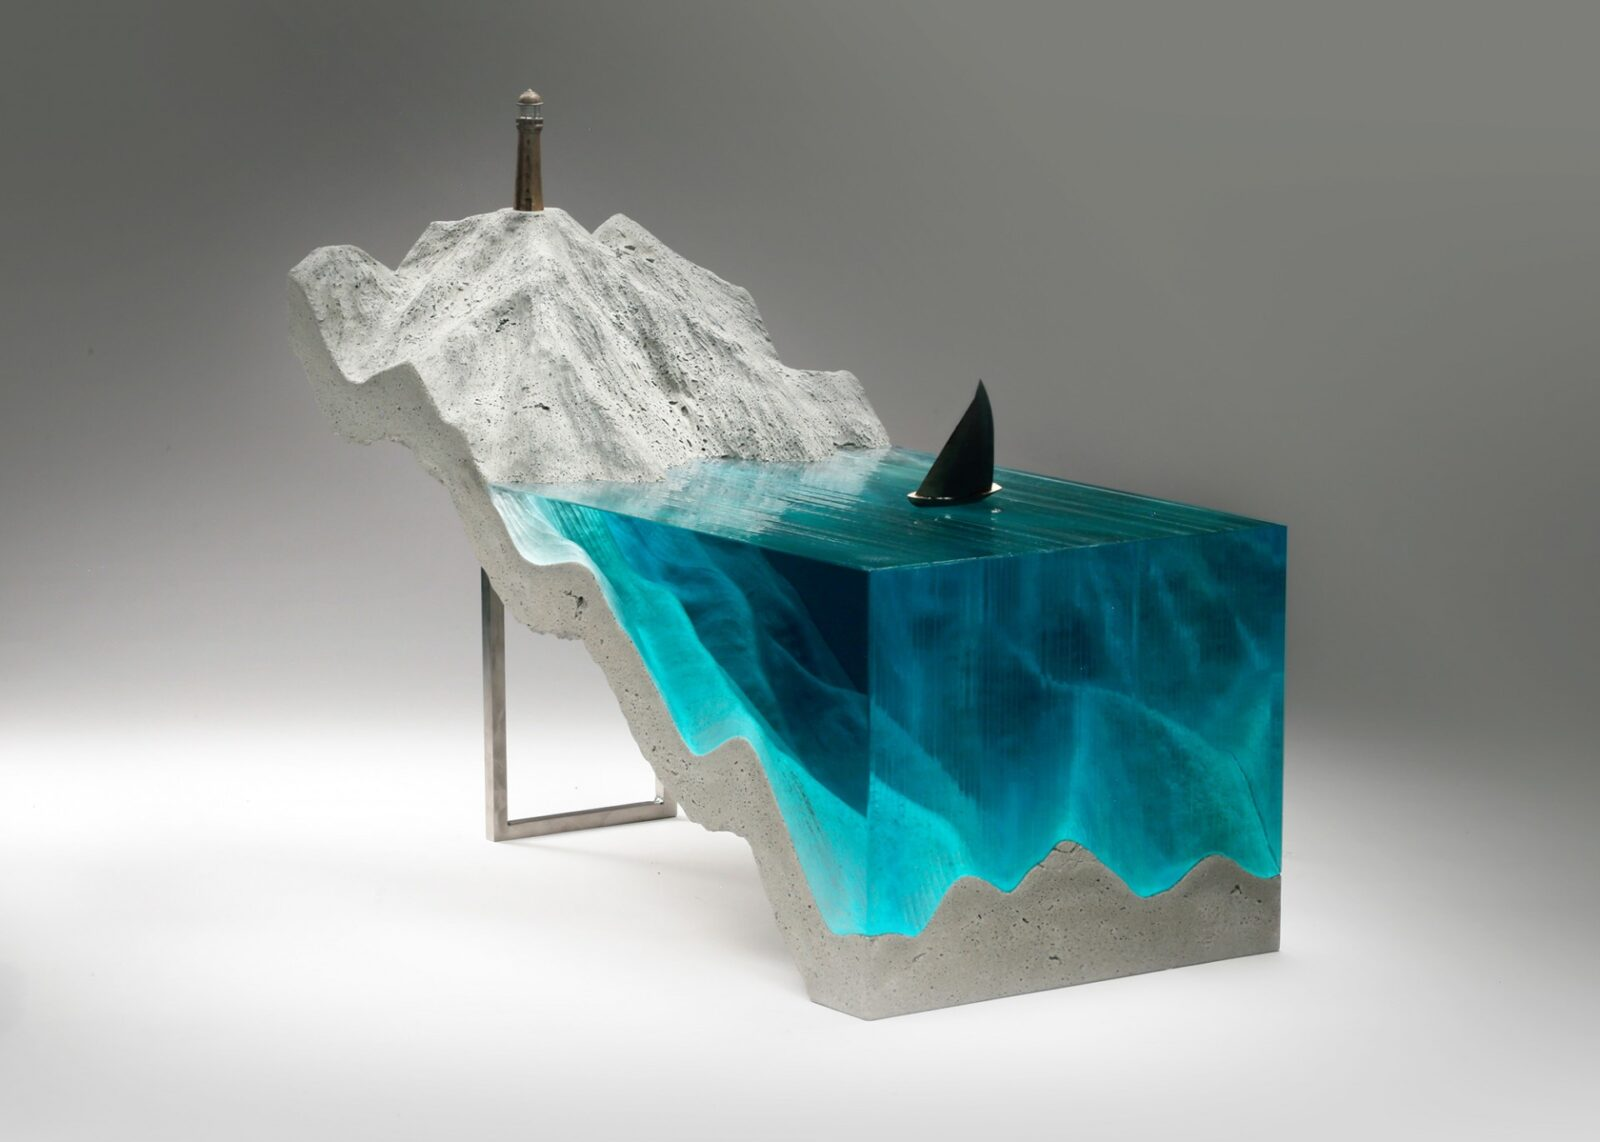 New Sculptures by Ben Young Transform Hand-Cut Glass into